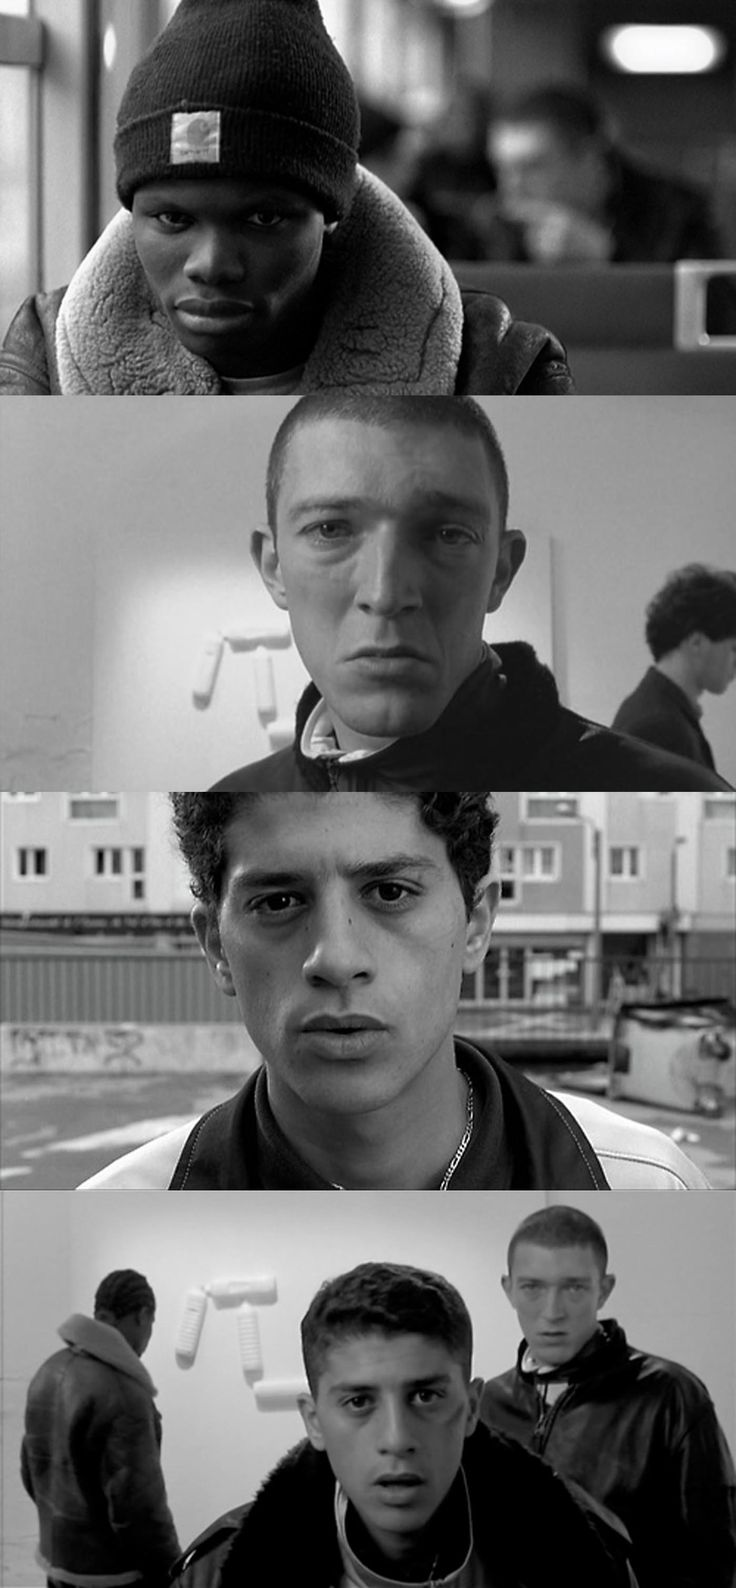 best ideas about la haine film charlie chaplin la haine cinematography by pierre aatildemacrm directed by mathieu kassovitz